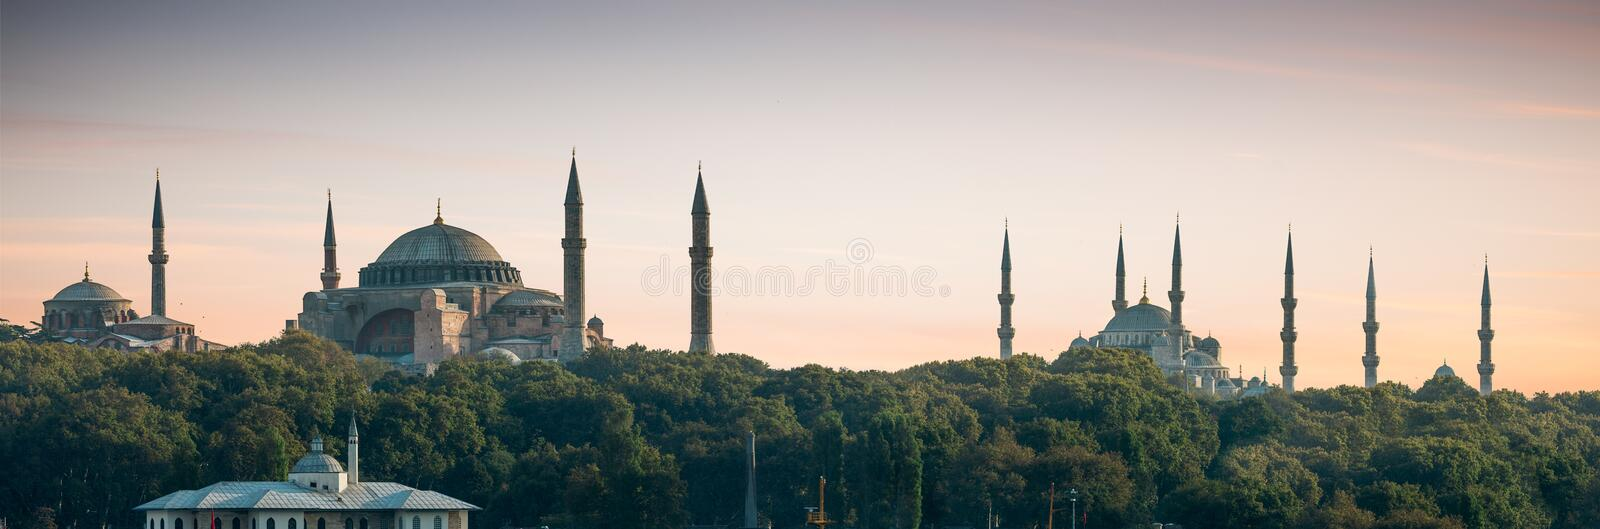 Panorama d'Istanbul images stock